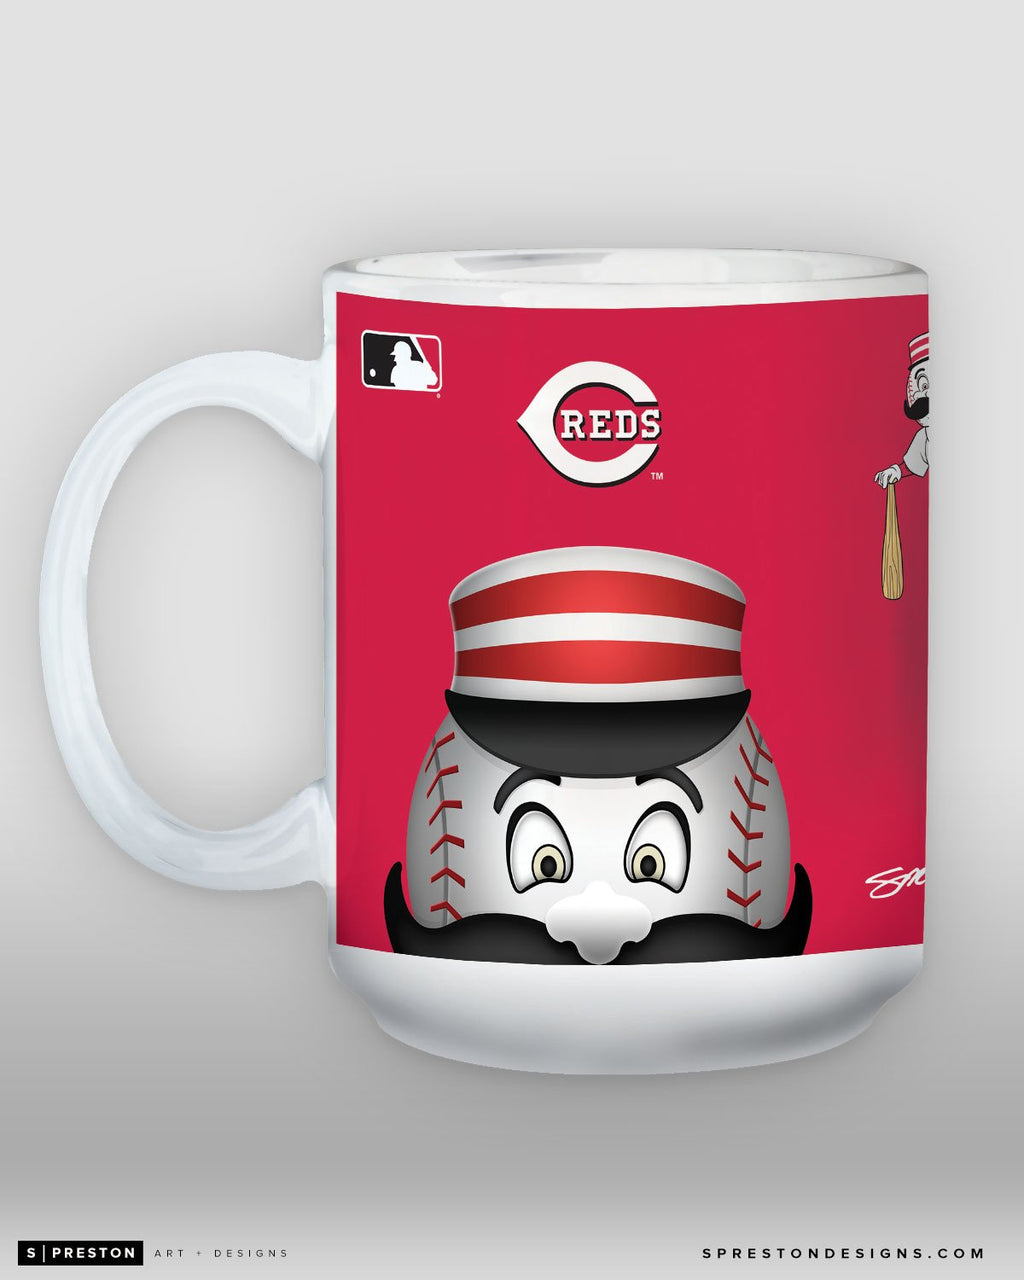 Minimalist Mr. Redlegs Coffee Mug - MLB Licensed - Cincinnati Reds Mascot